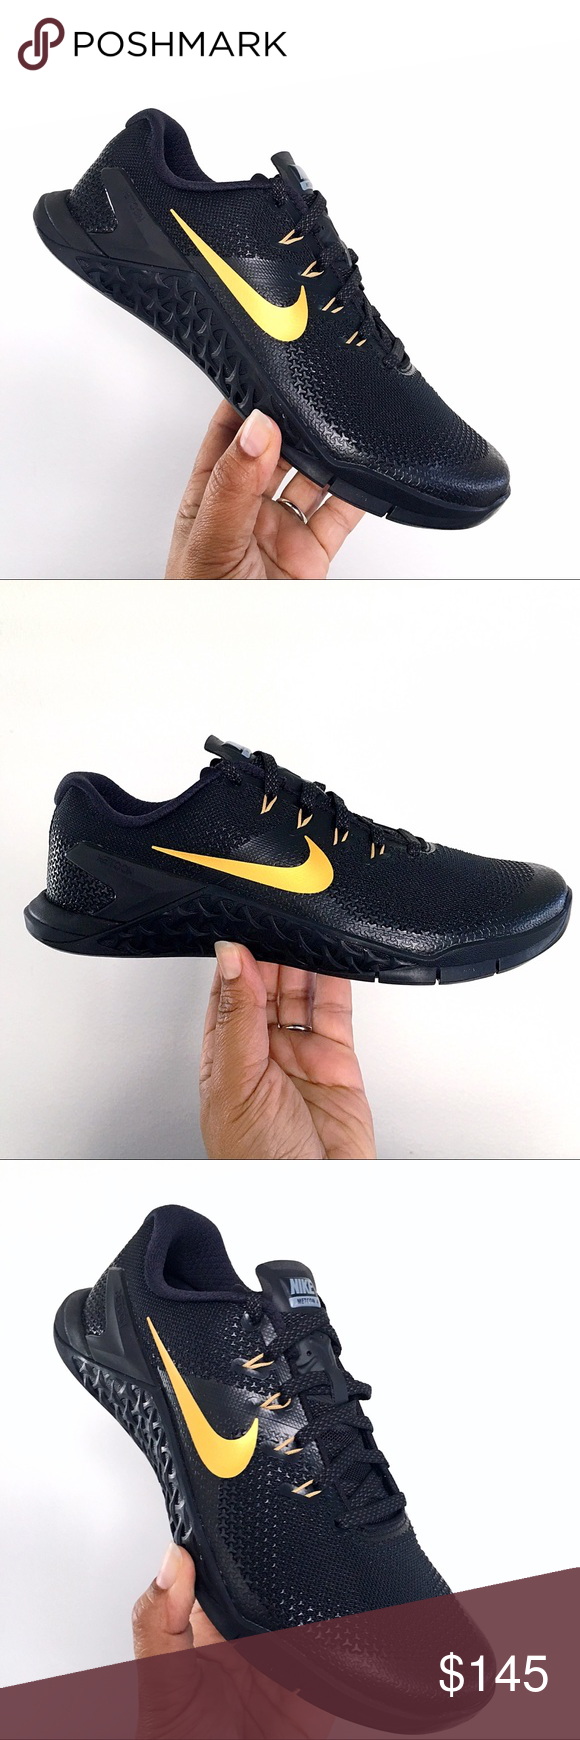 Nike iD Metcon 4 XD Black and Gold